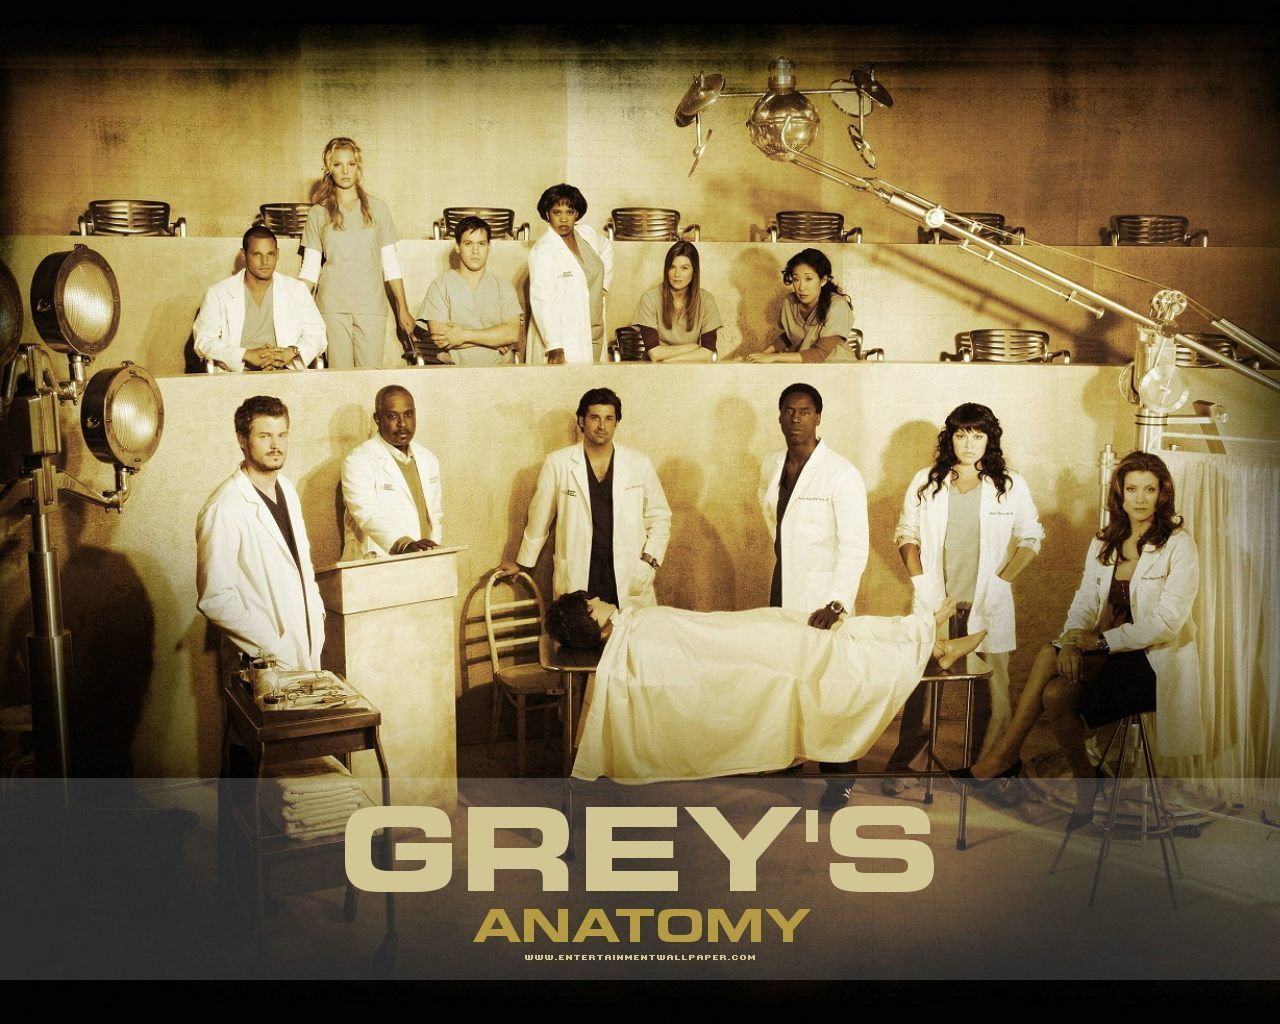 grey 39 s anatomy images grey 39 s anatomy hd wallpaper and